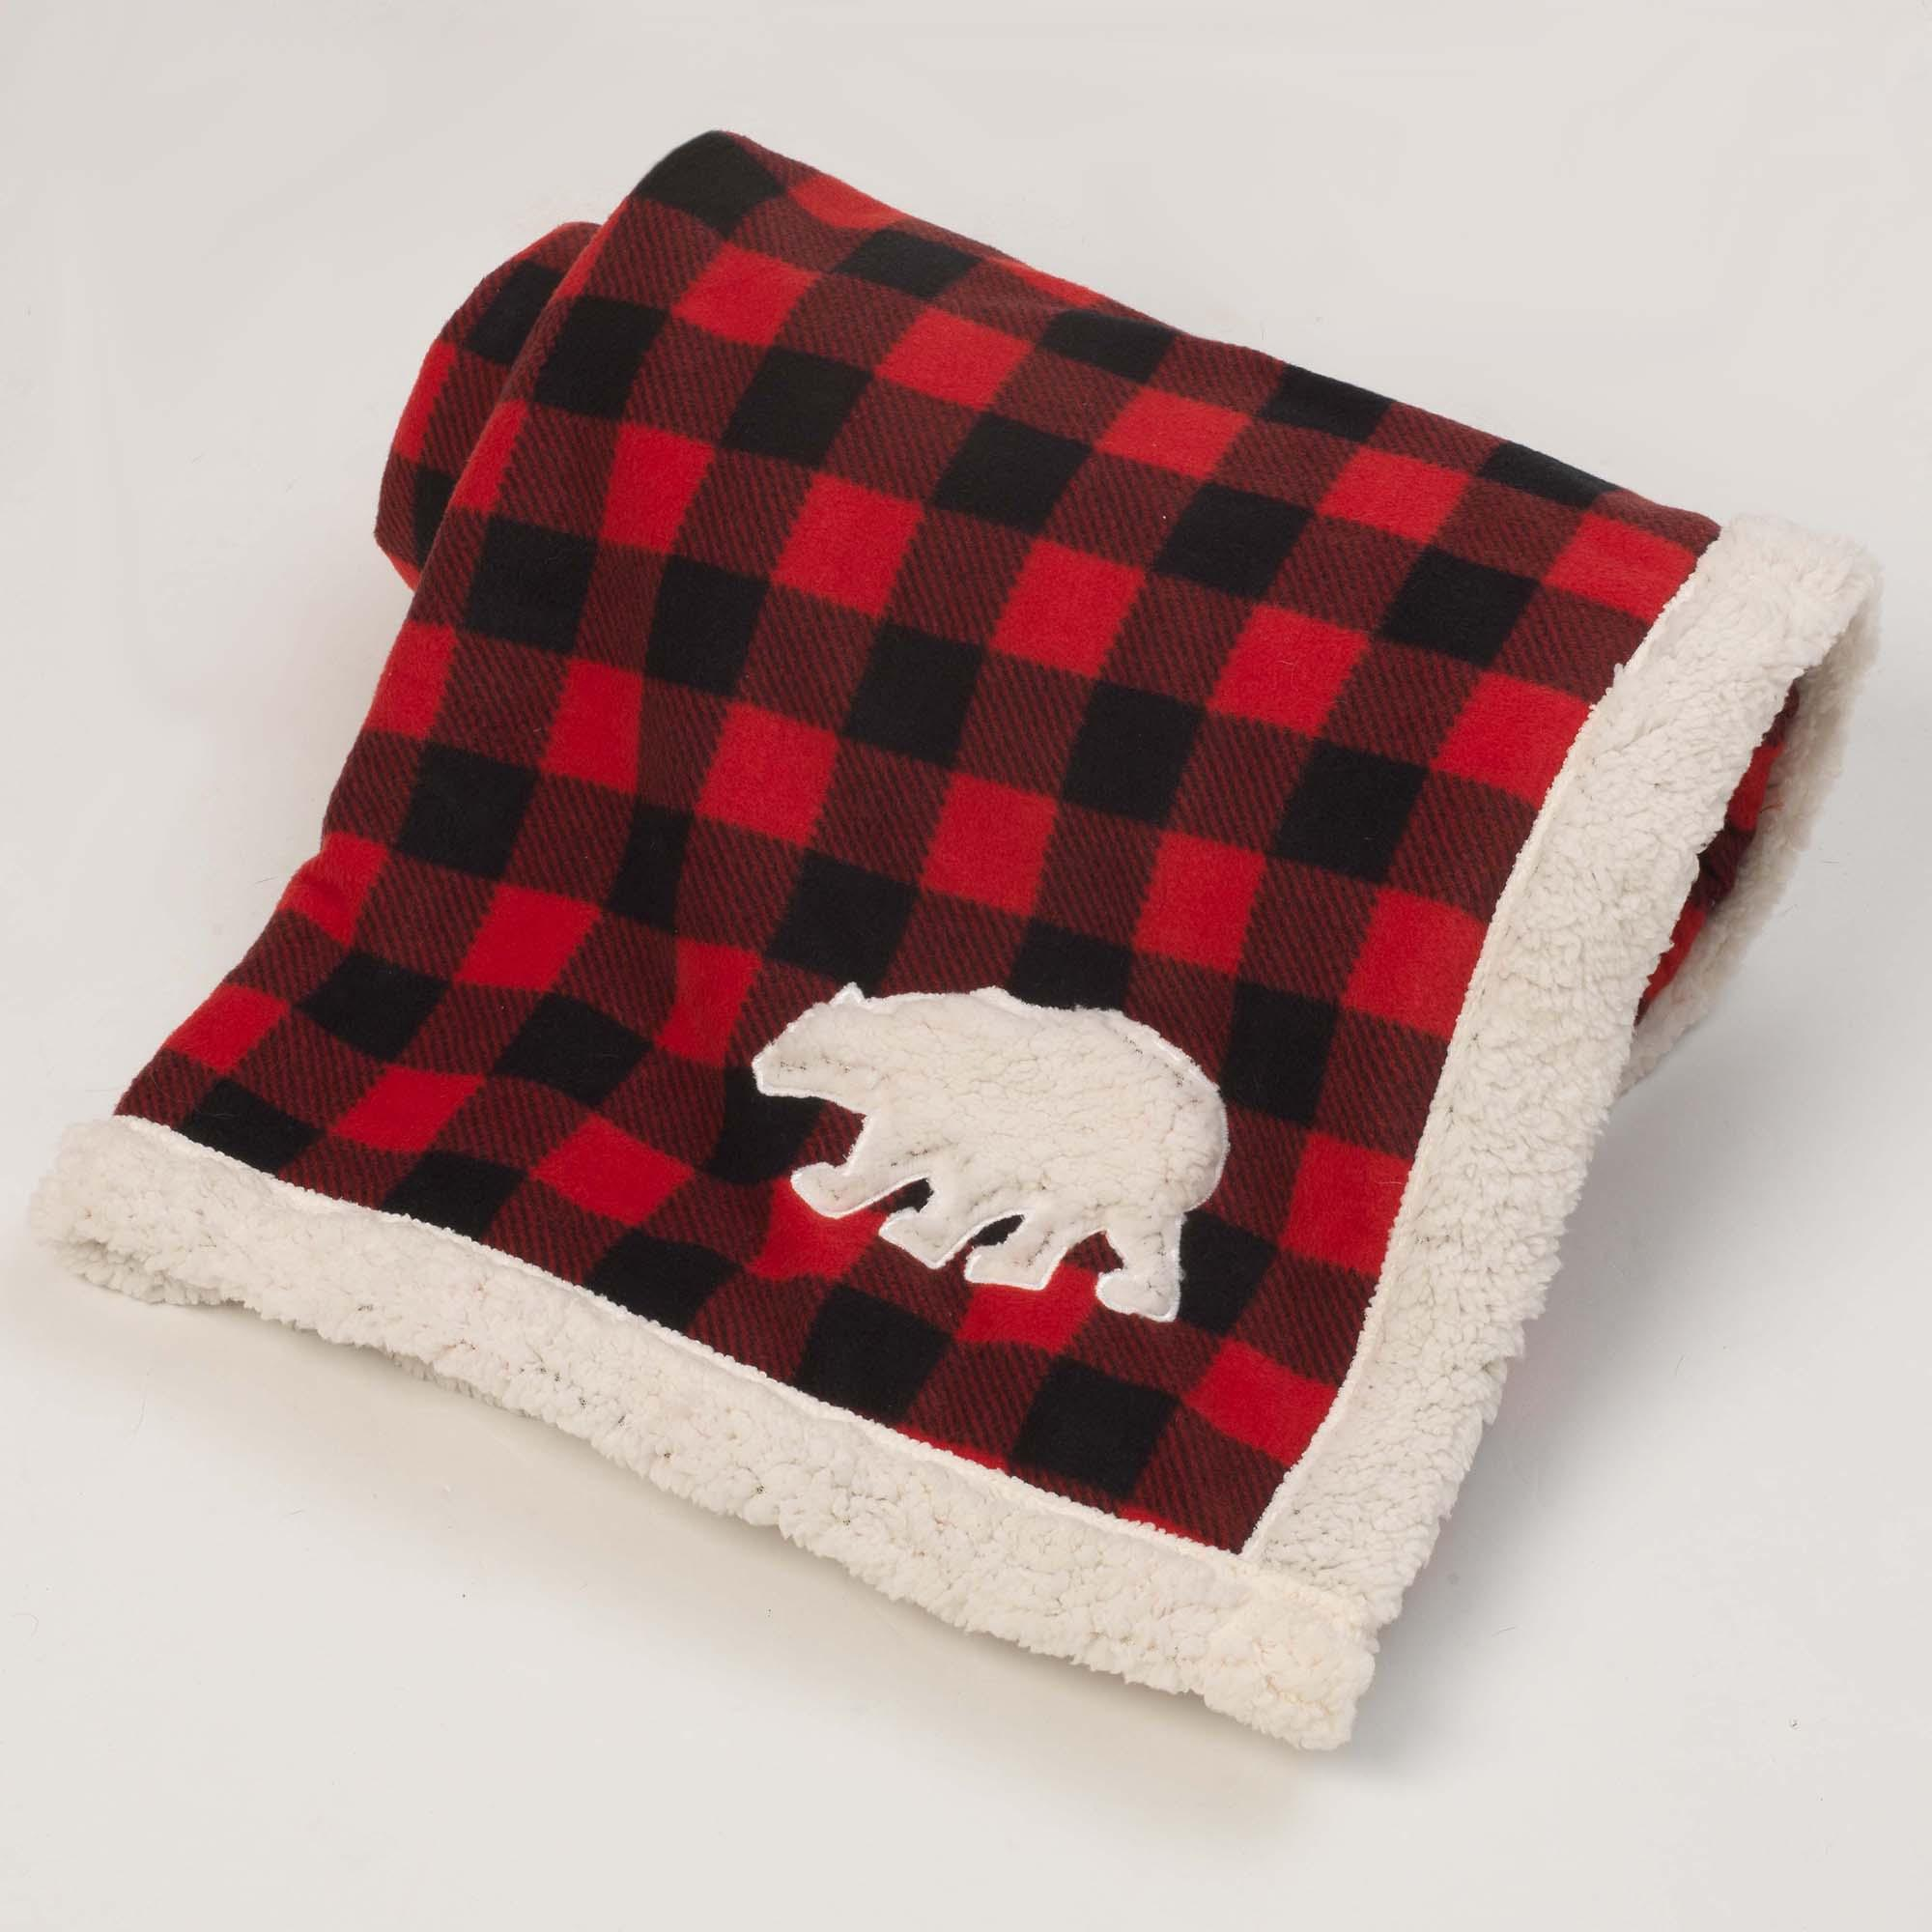 Jackson Polar Bear Fleece Dog Blanket - Red/Black